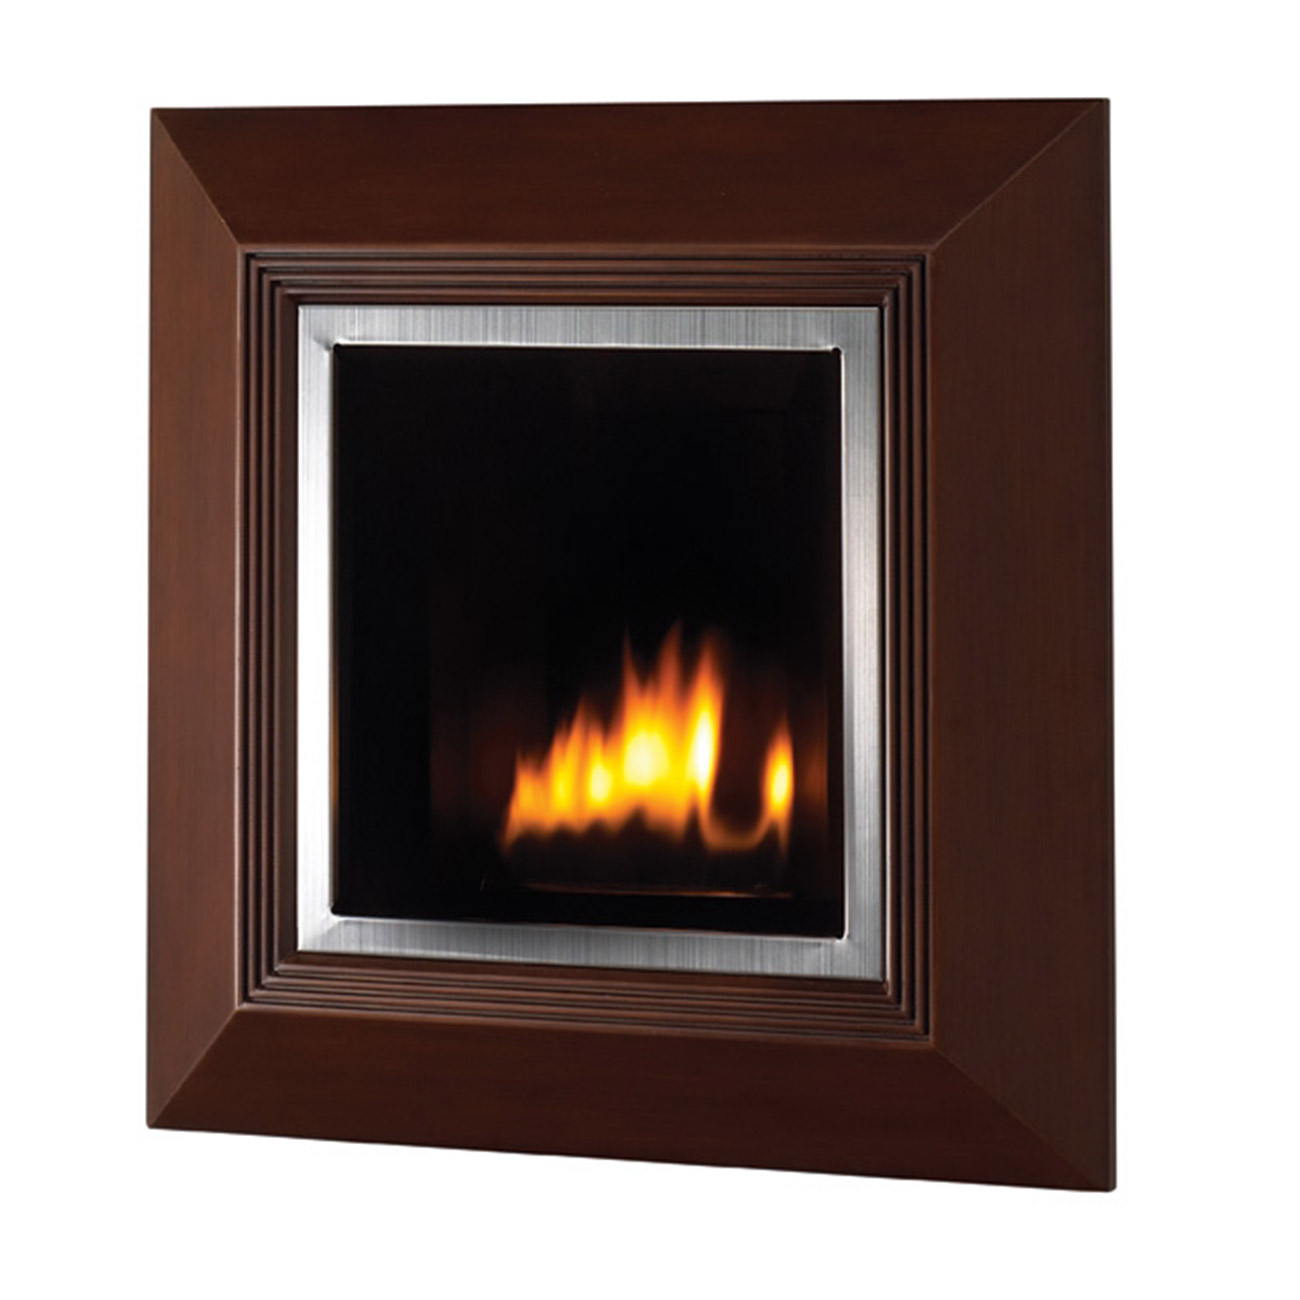 Decorative Ventless Wall Heater Model